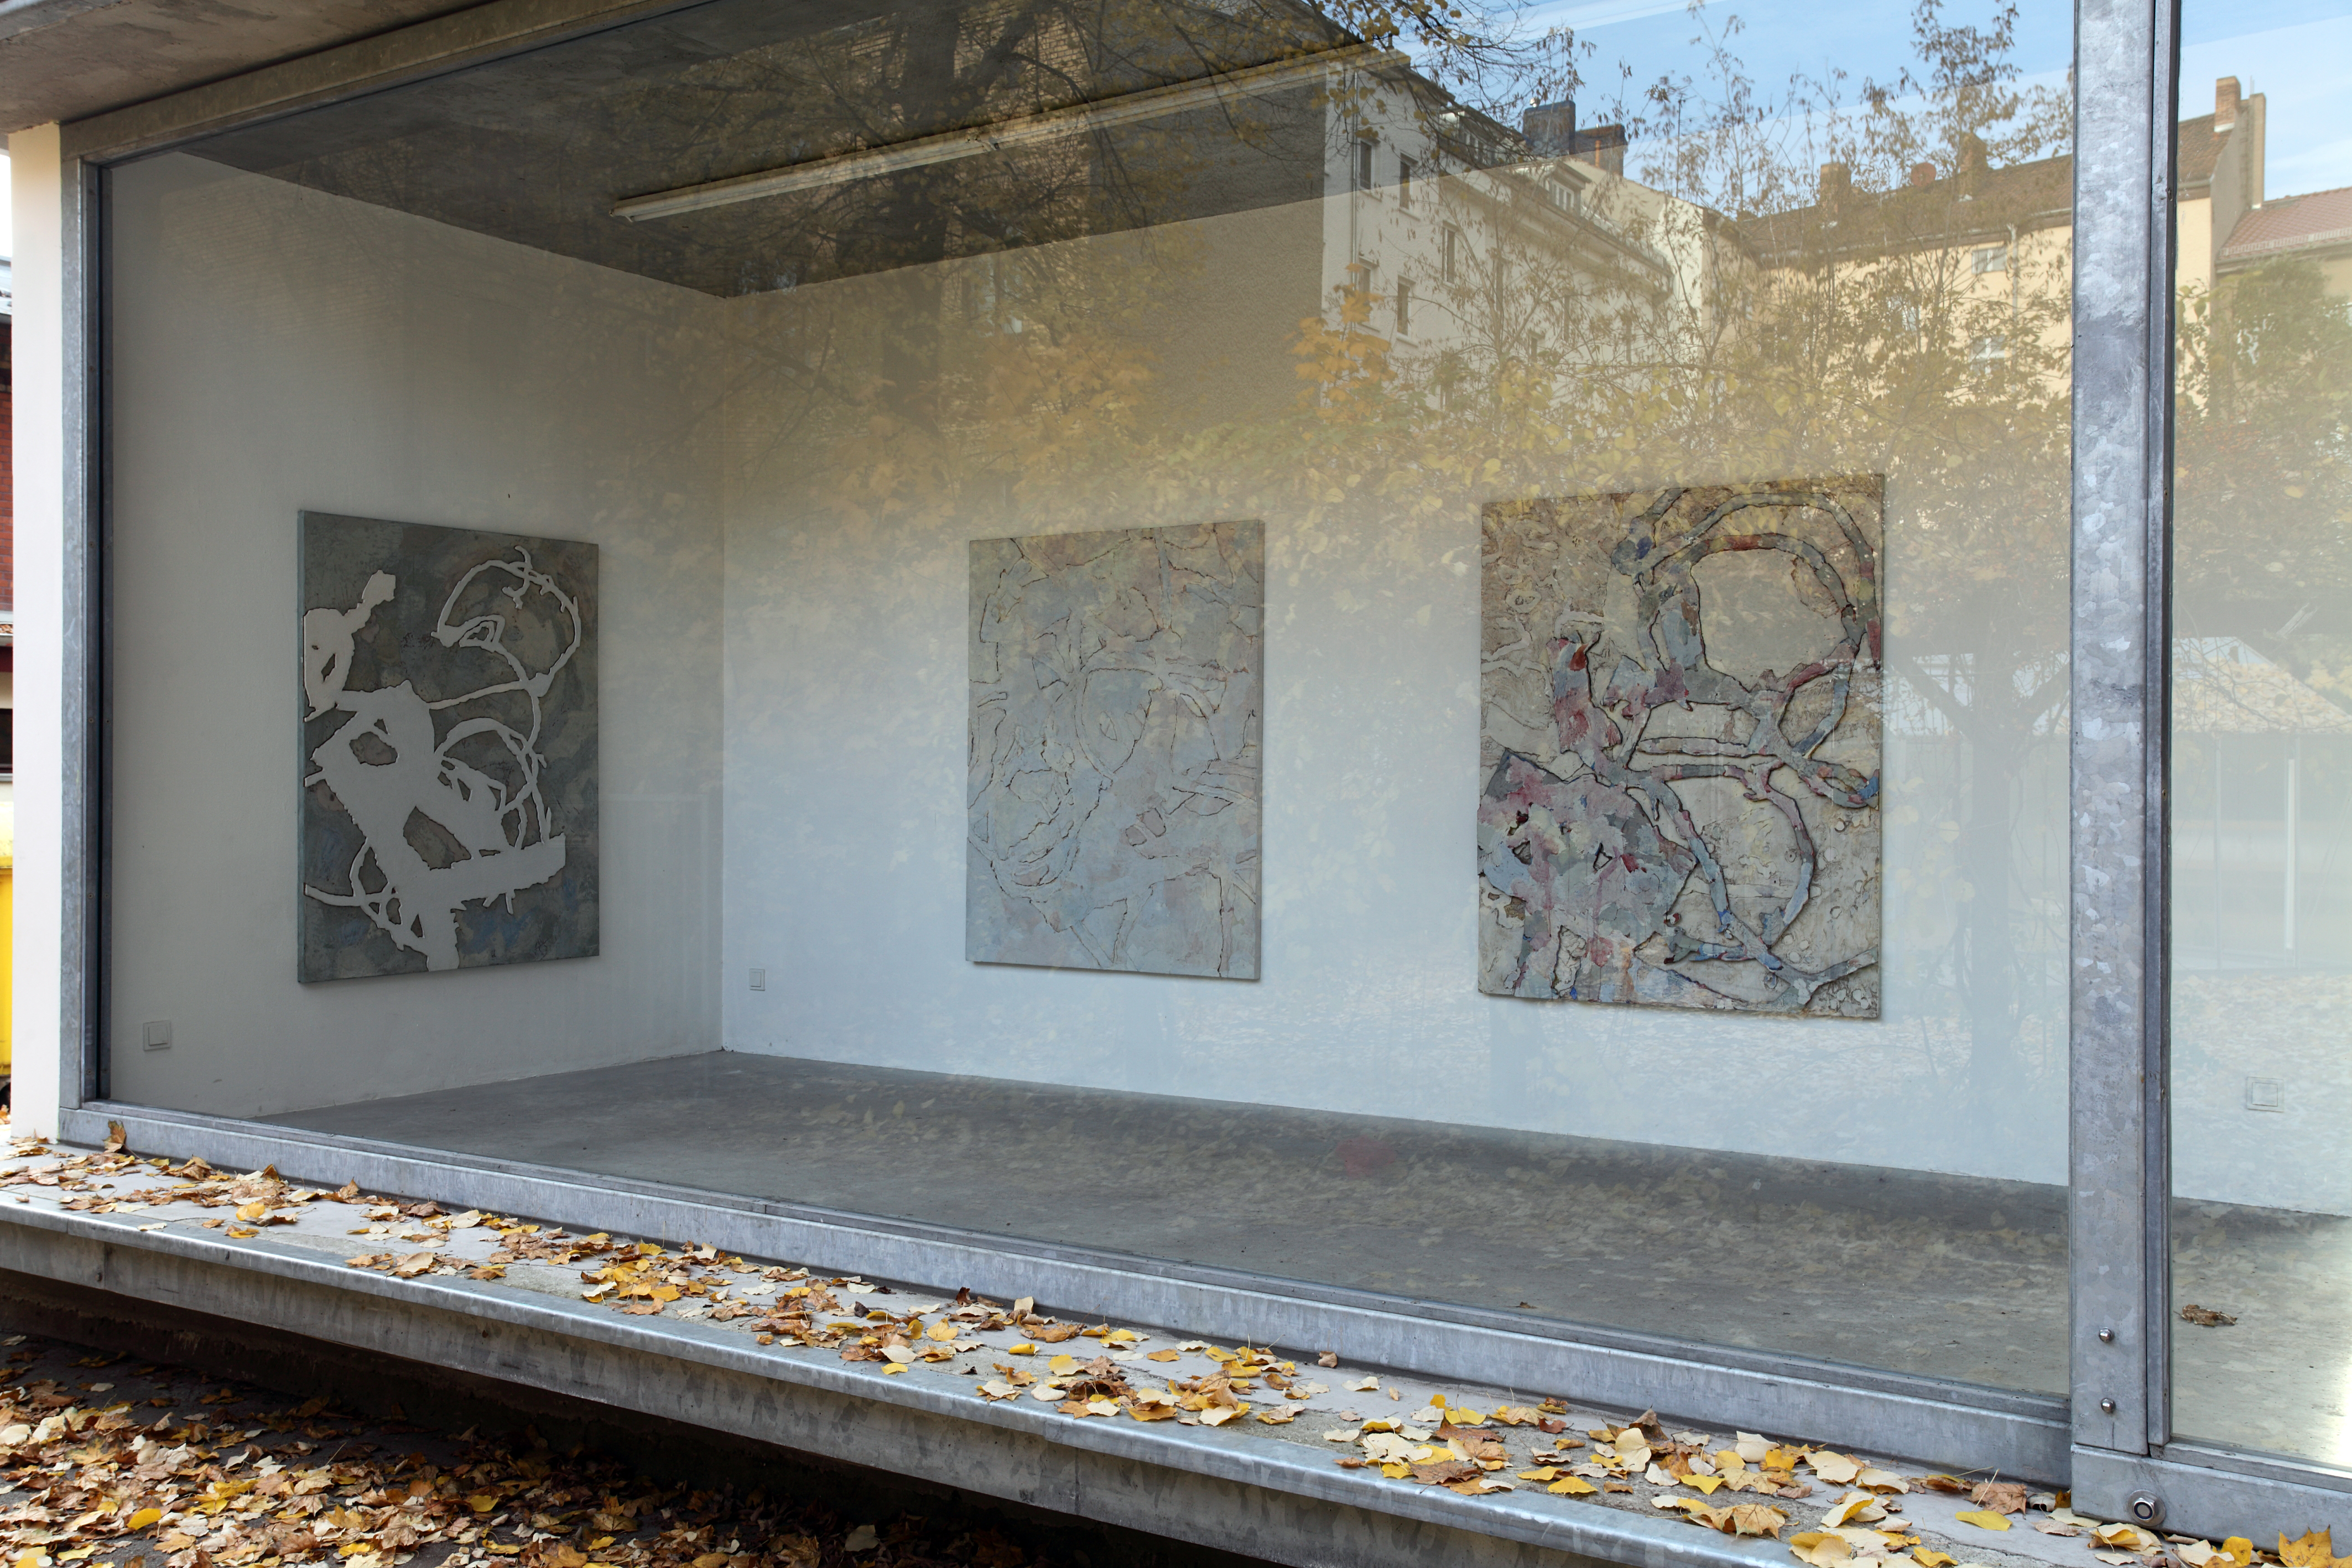 Solo Exhibition. Pavillon am Milchhof, Berlin